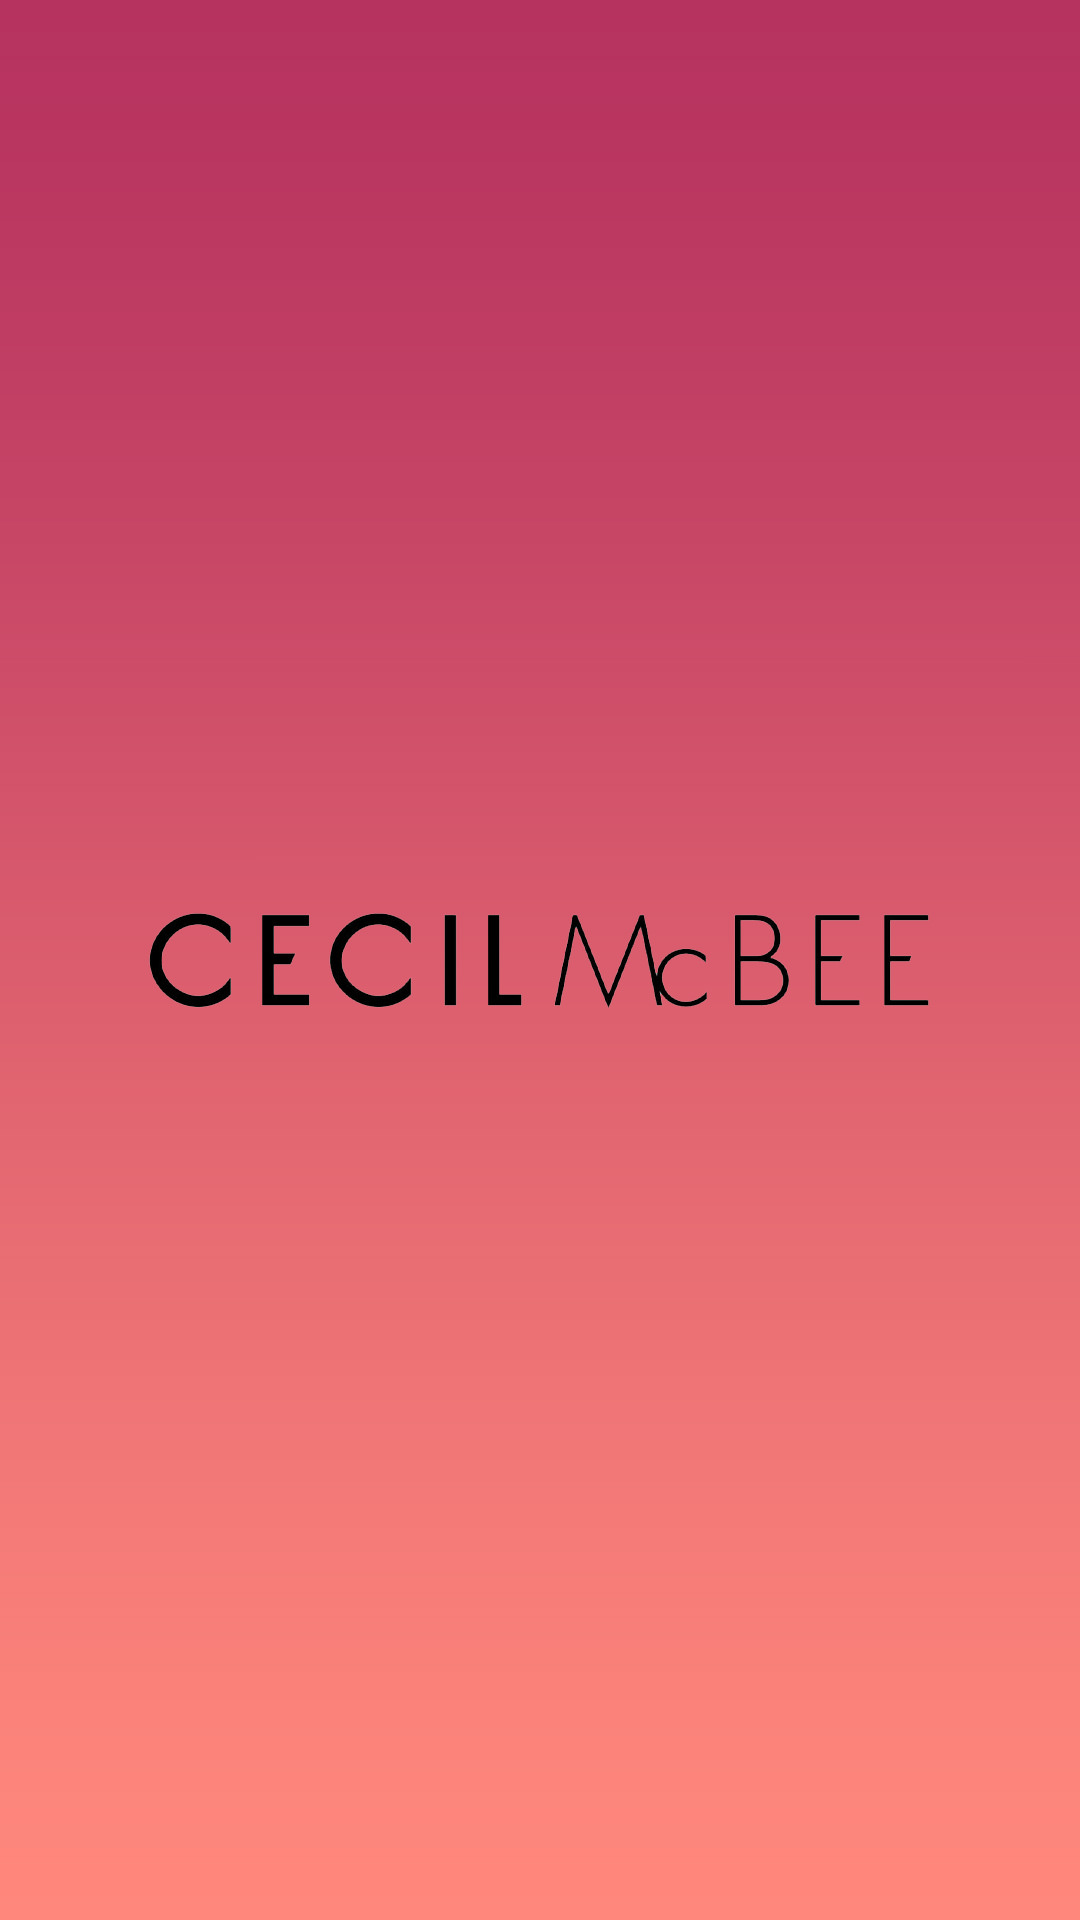 cecil00006 - セシルマクビー[CECIL McBEE]の高画質スマホ壁紙23枚 [iPhone&Androidに対応]